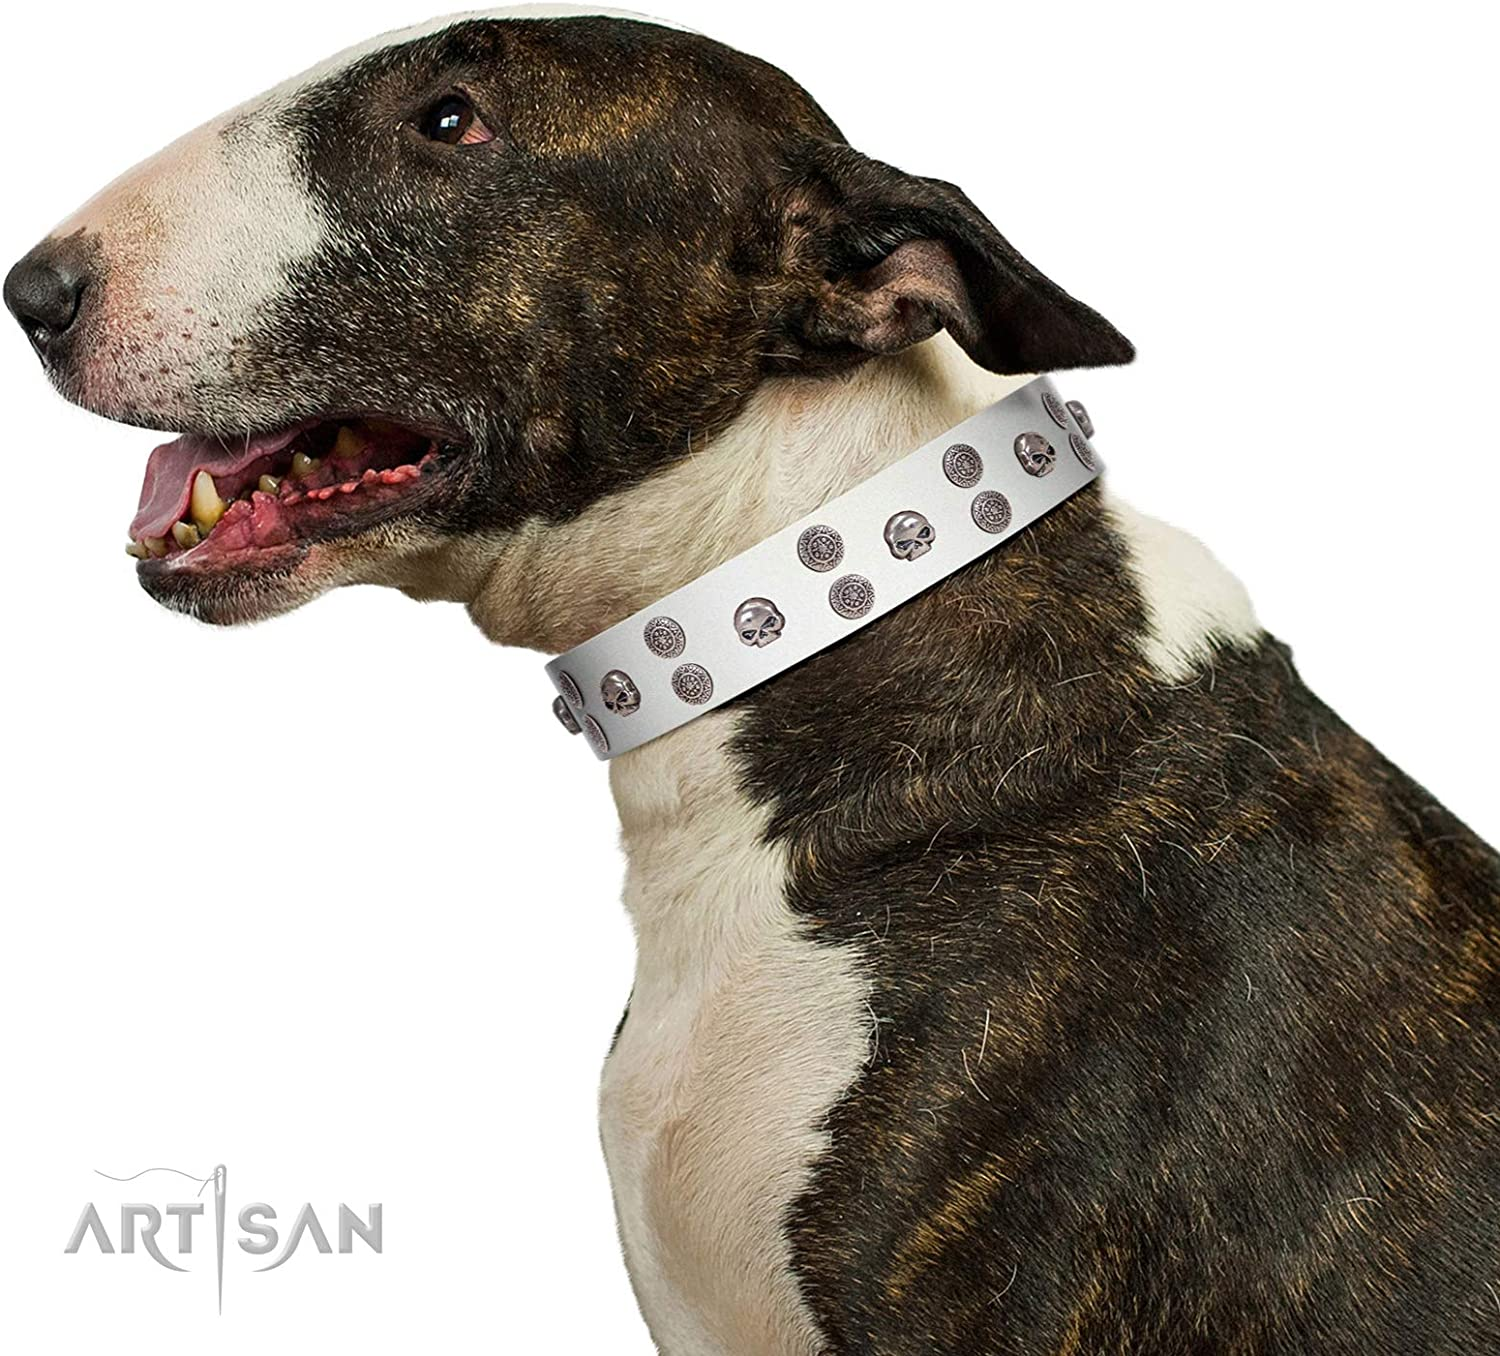 FDT Artisan 23 inch White Leather Dog Collar with SilverLike Skulls  Edgy Look  1 1 2 inch (40 mm) Wide  Gift Box Included